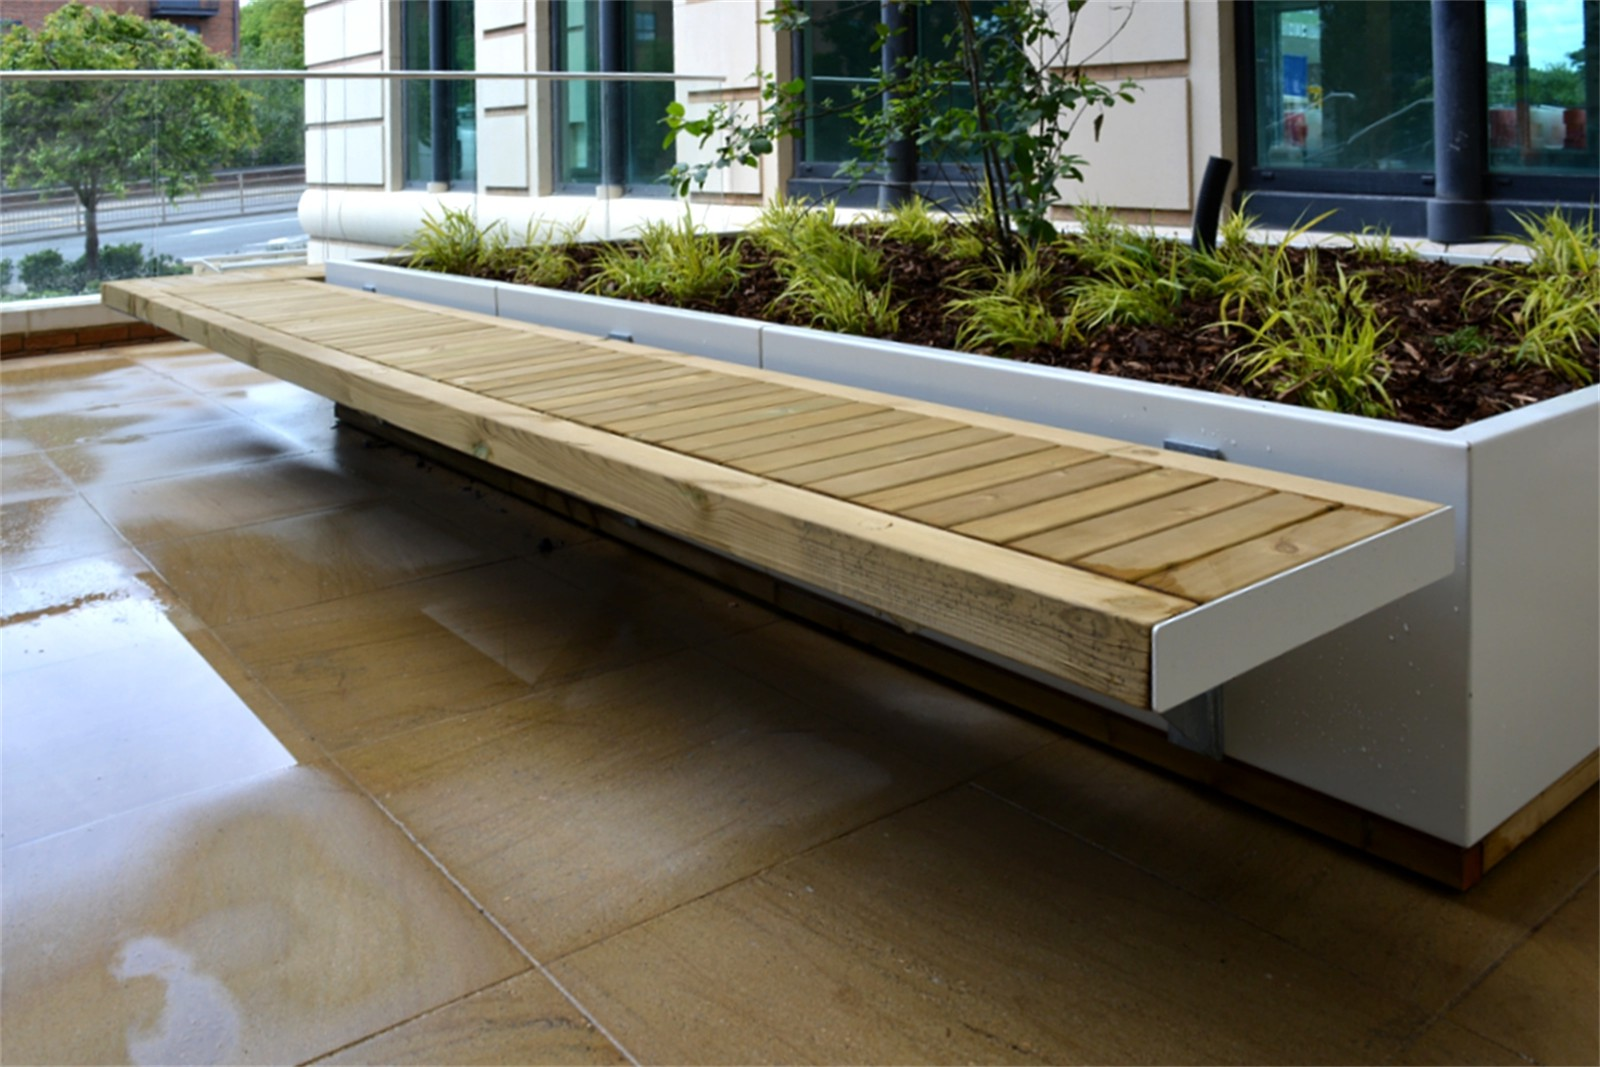 77ssh20 - Sheldon side fixed wall mounted planter bench